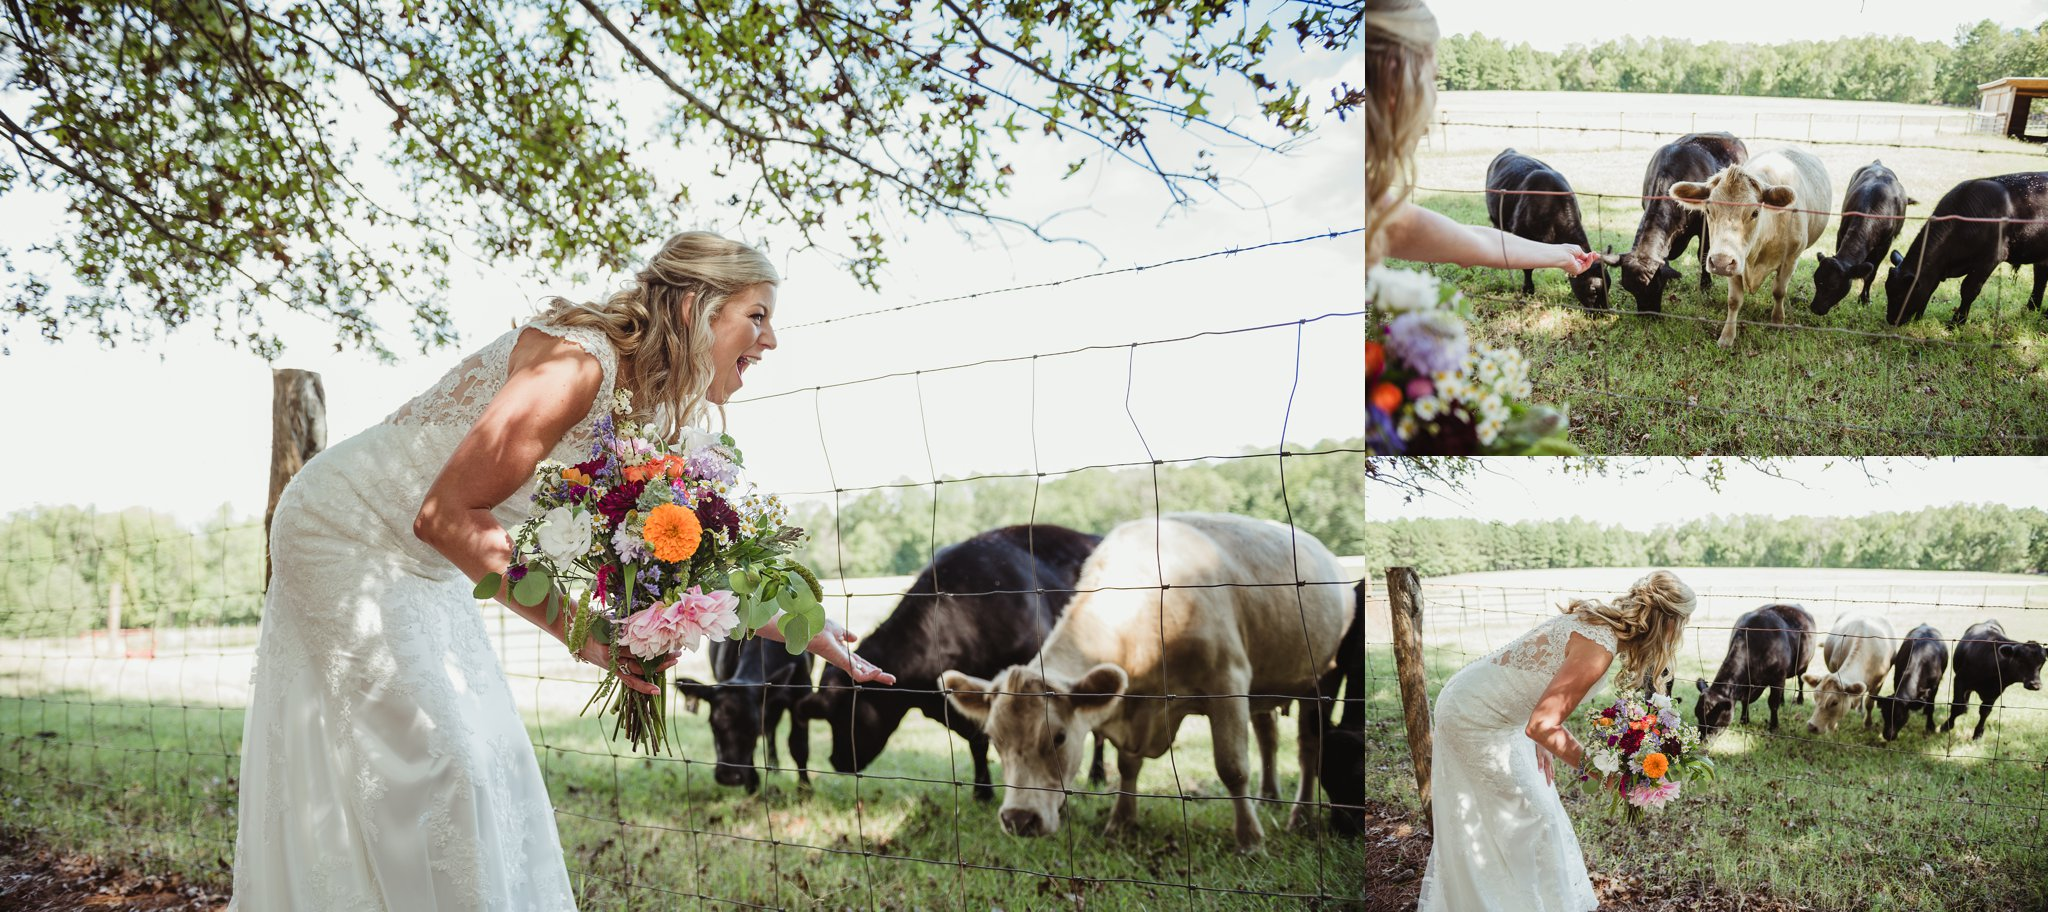 The bride and the cows pose for portraits with Rose Trail Images after her wedding ceremony at Cedar Grove Acres near North Carolina.